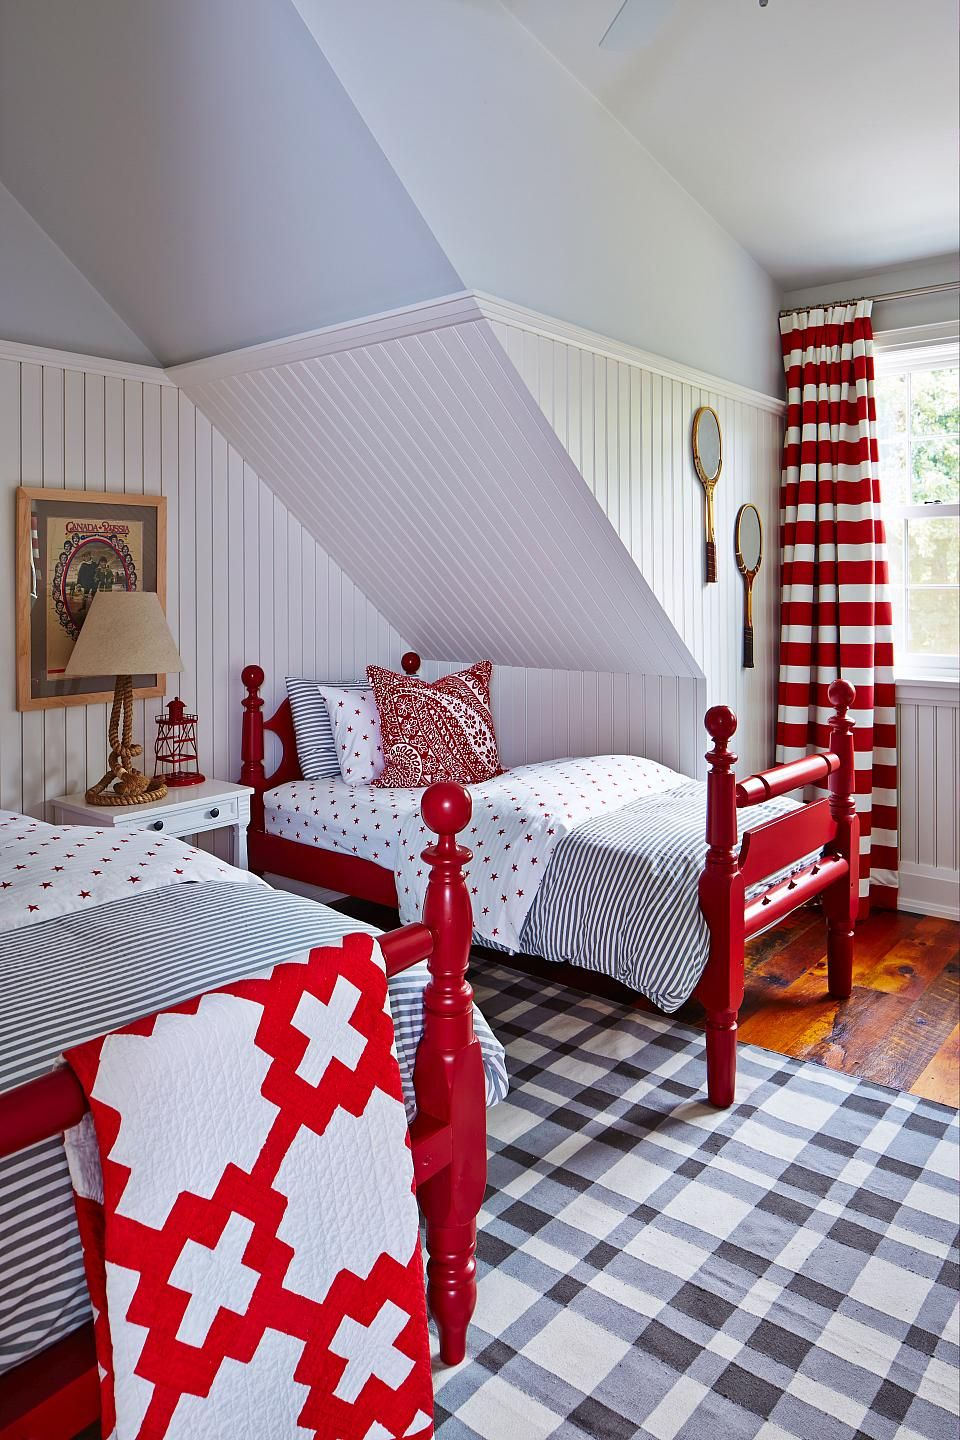 House Tour A Colorful Lakeside Beach House Bedroom Red